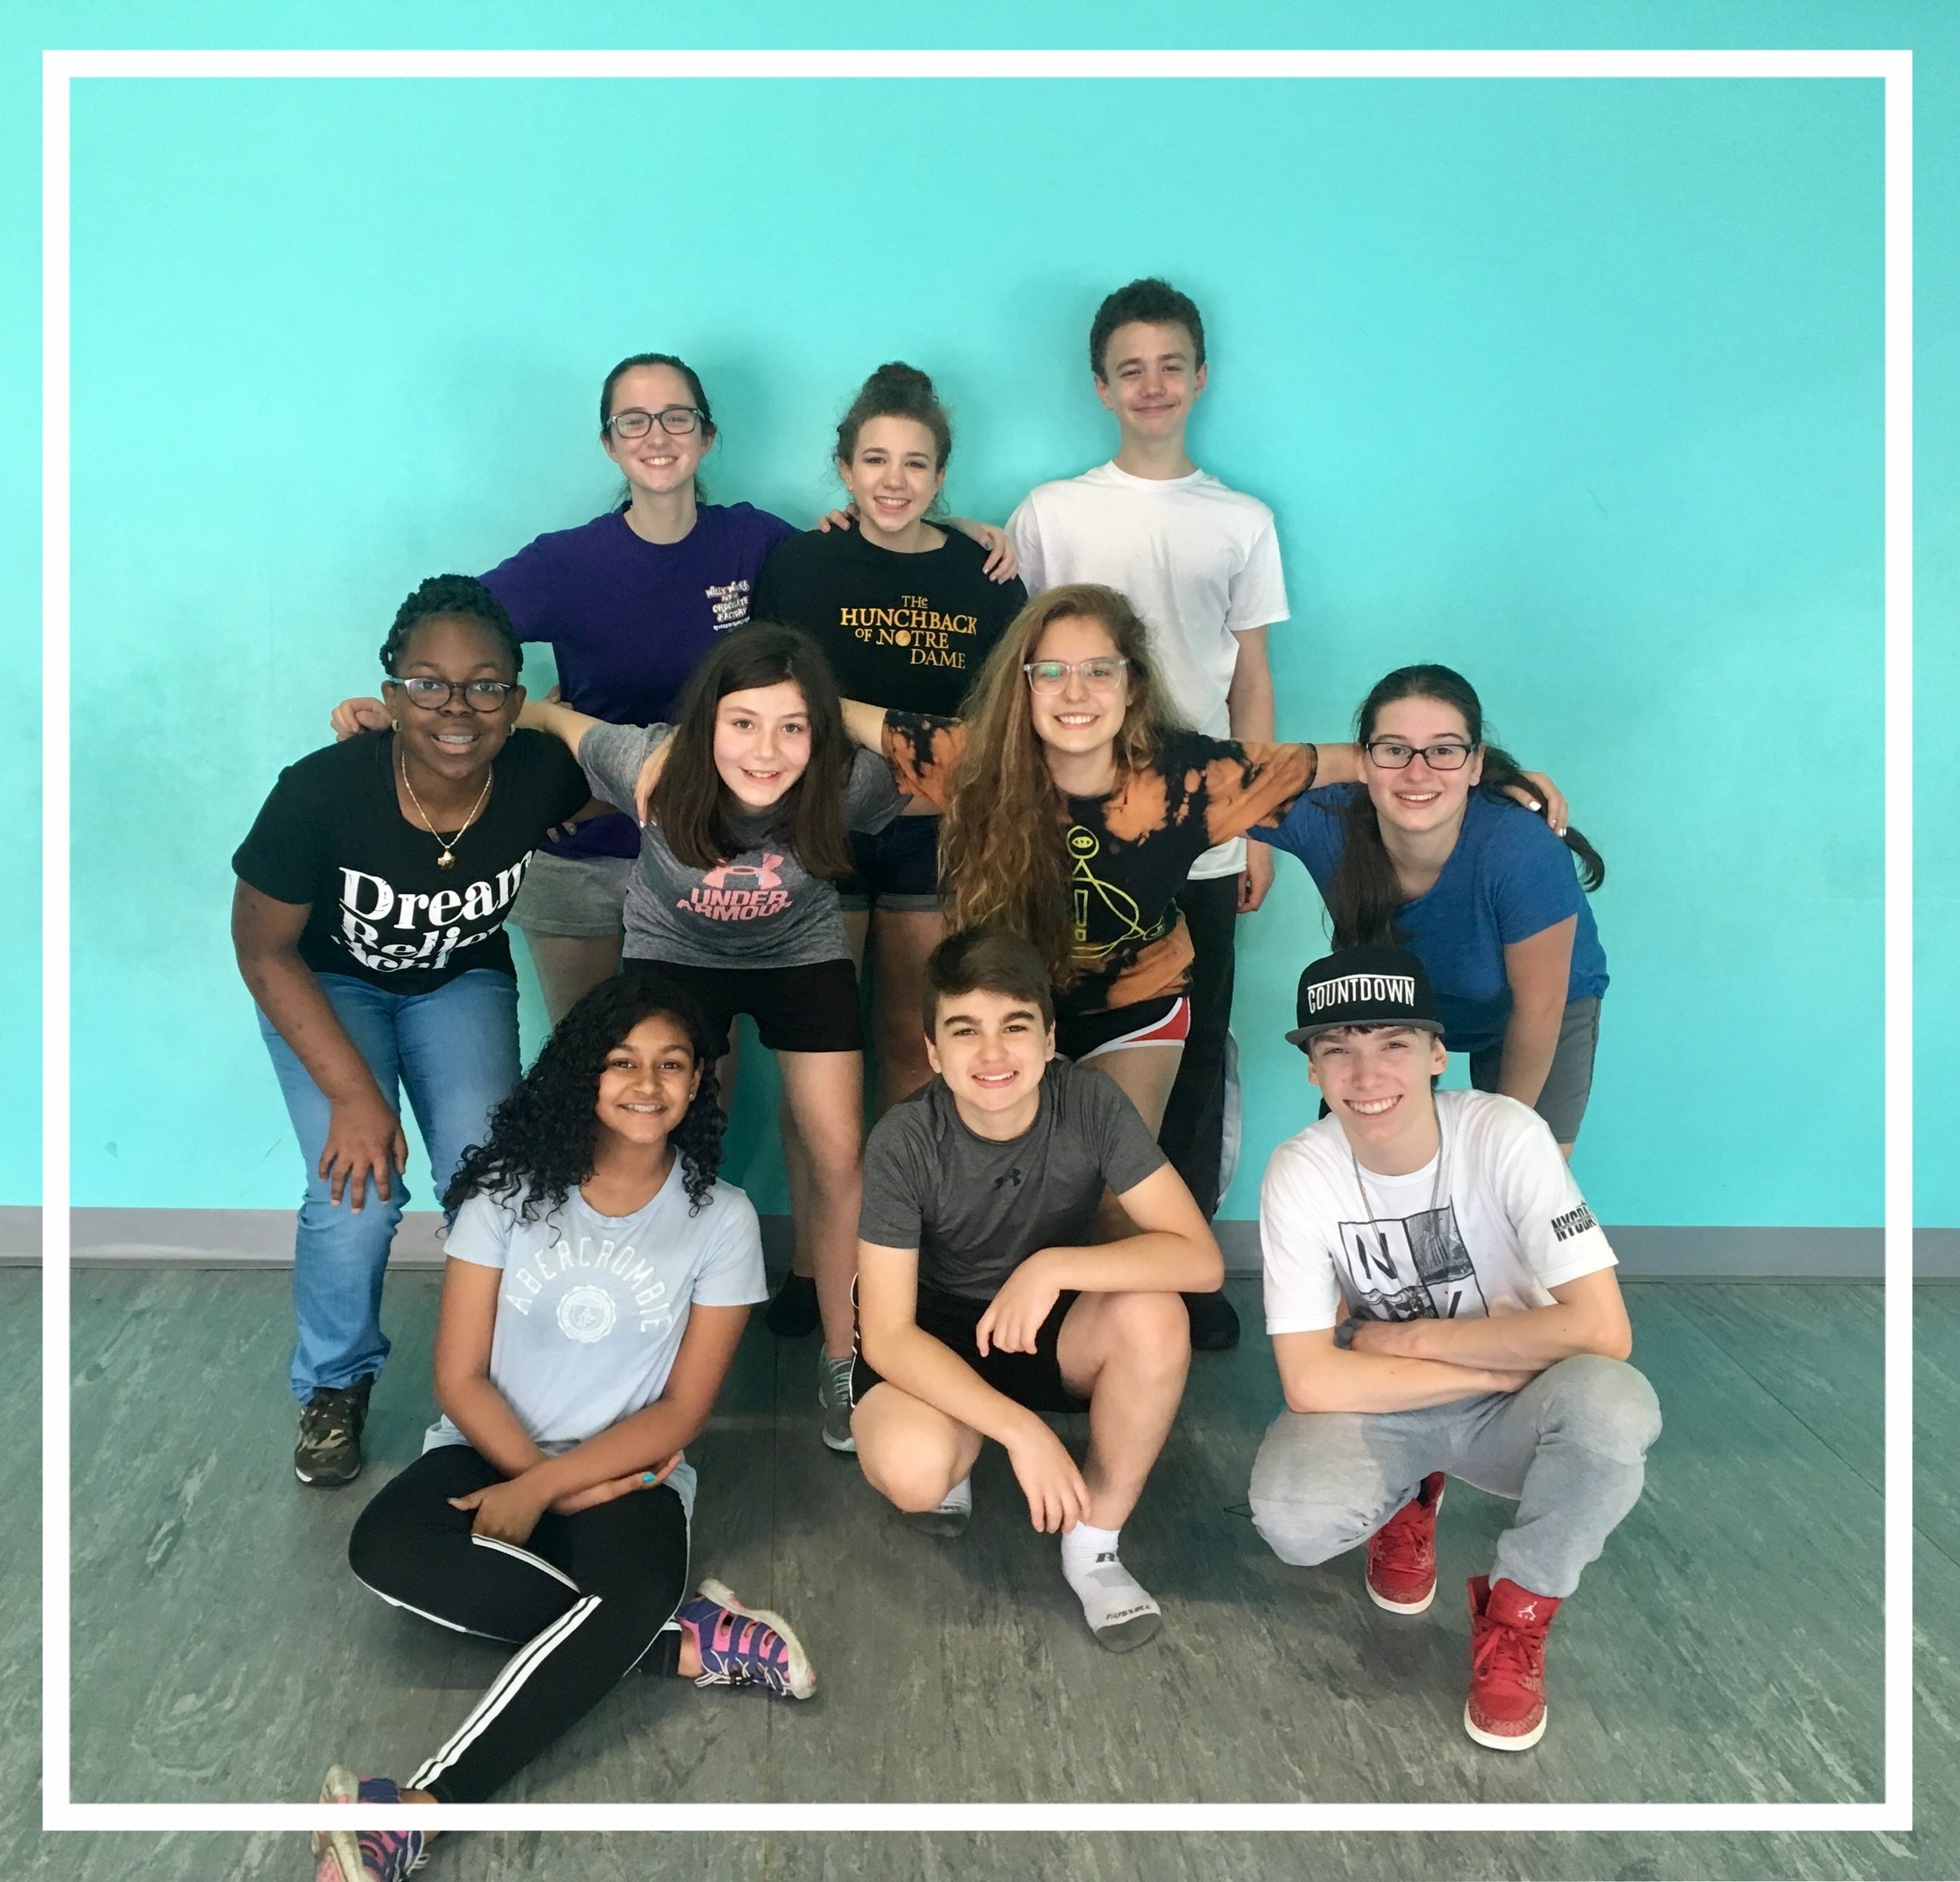 TVAI Studio Class allows students to bond and learn from one another!